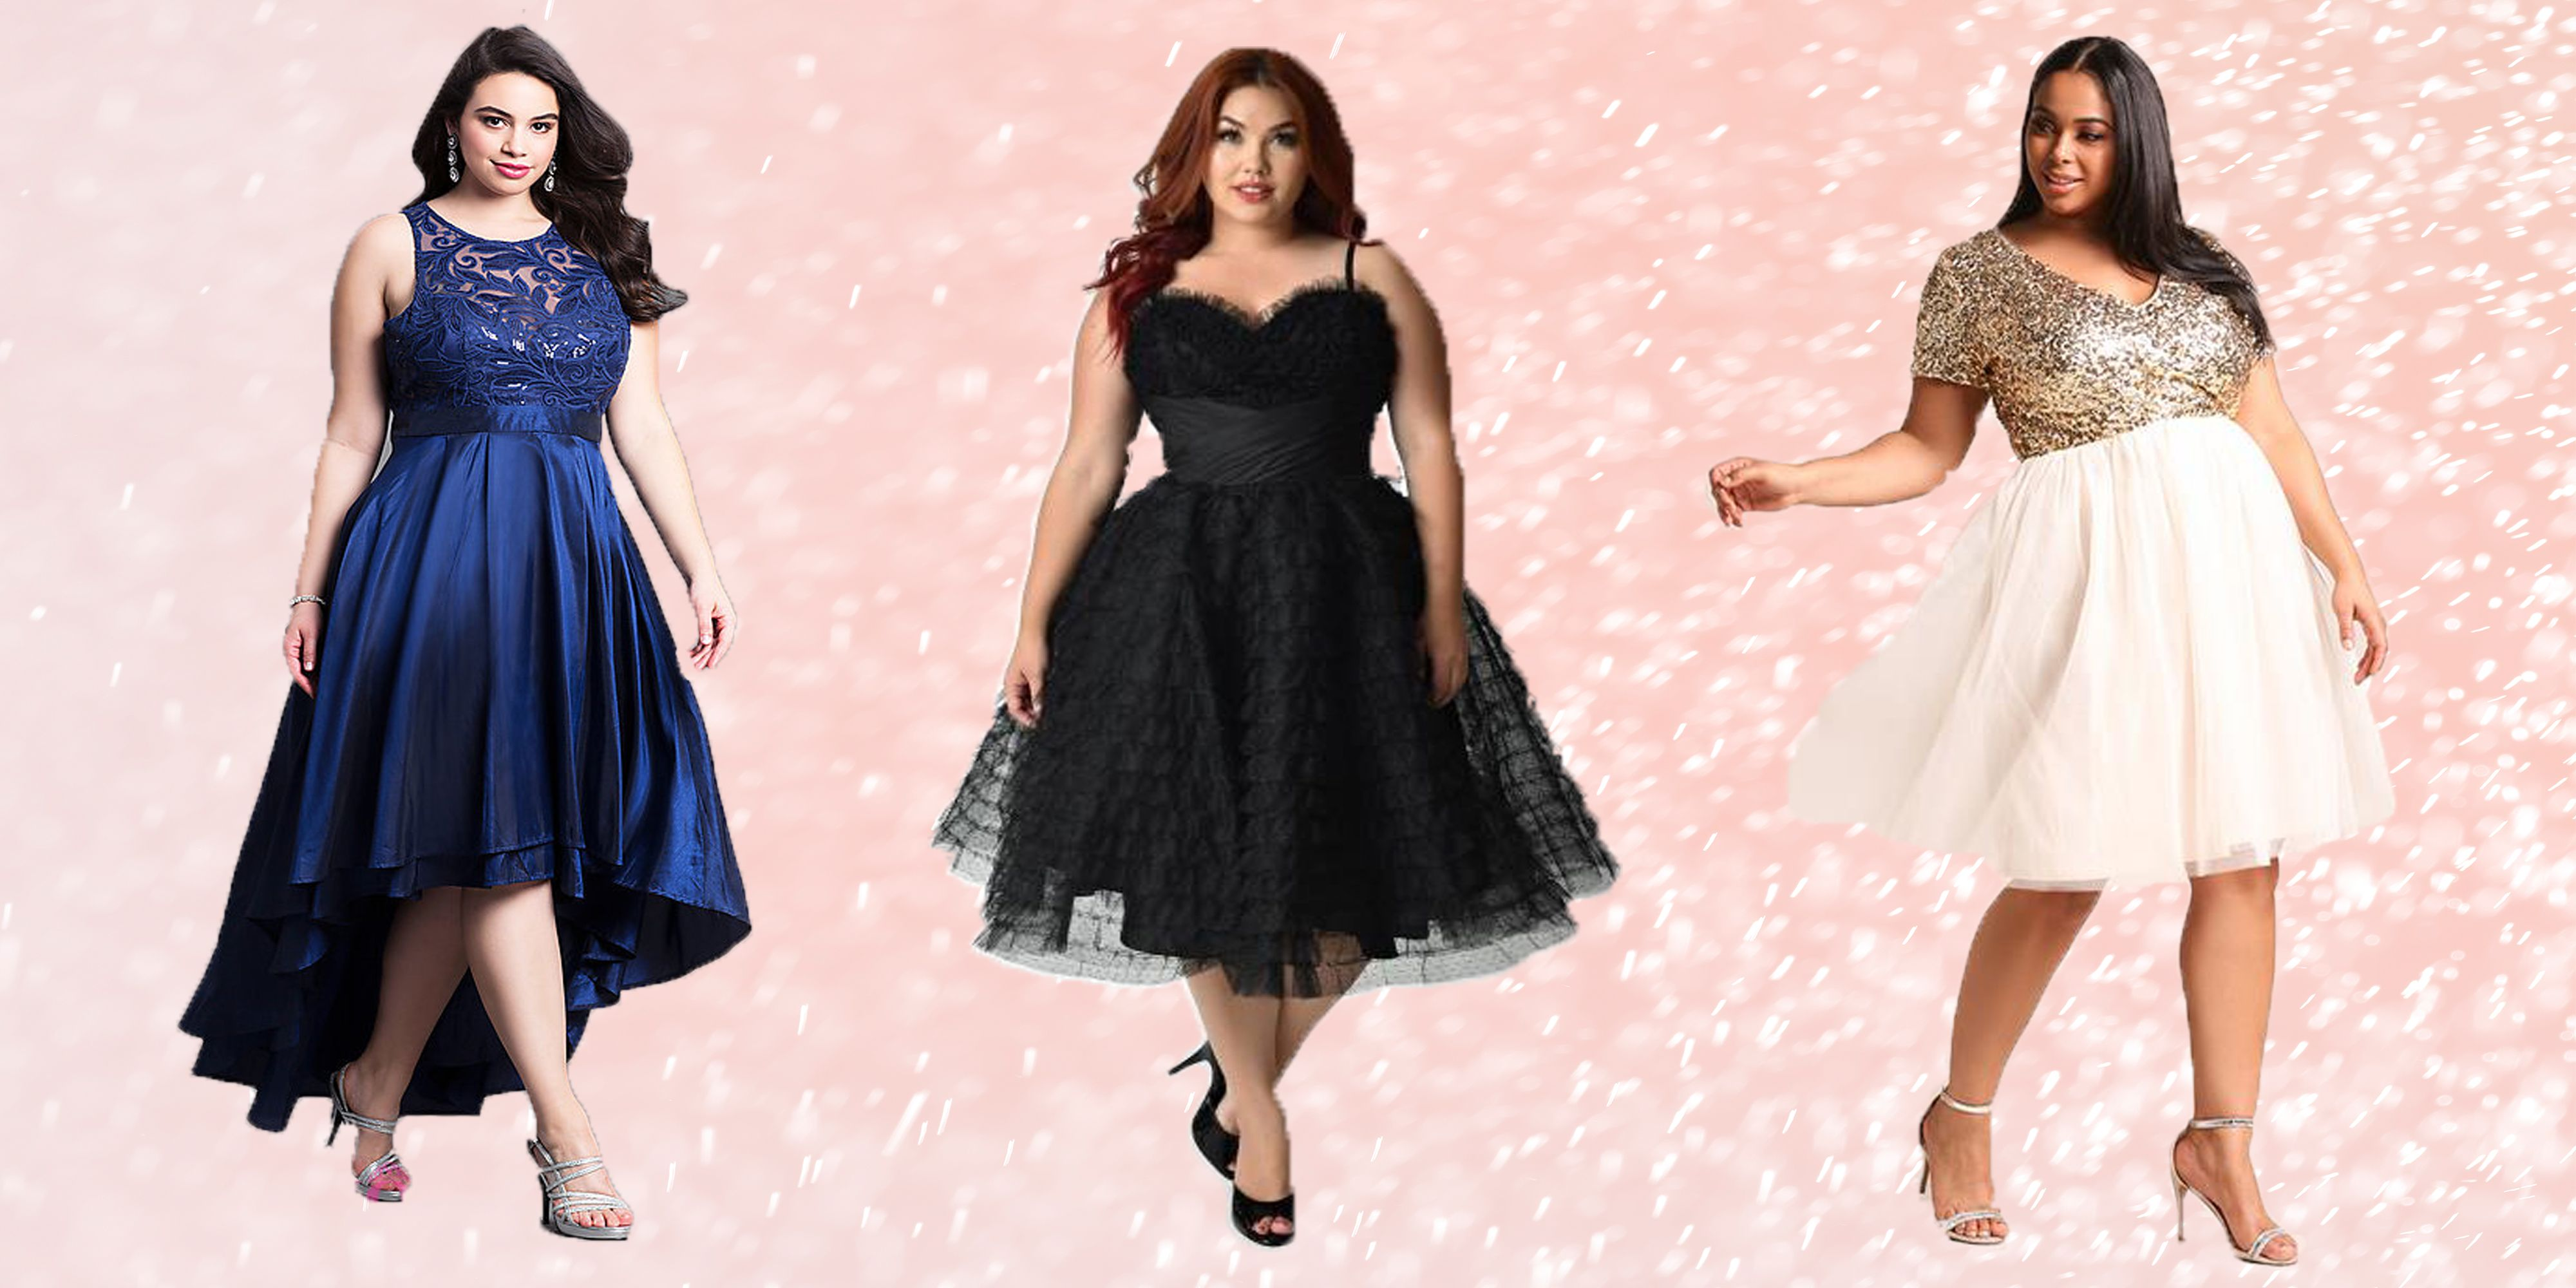 16 Gorgeous Plus Size Prom Dresses of 2018 to Show Off Your Curves